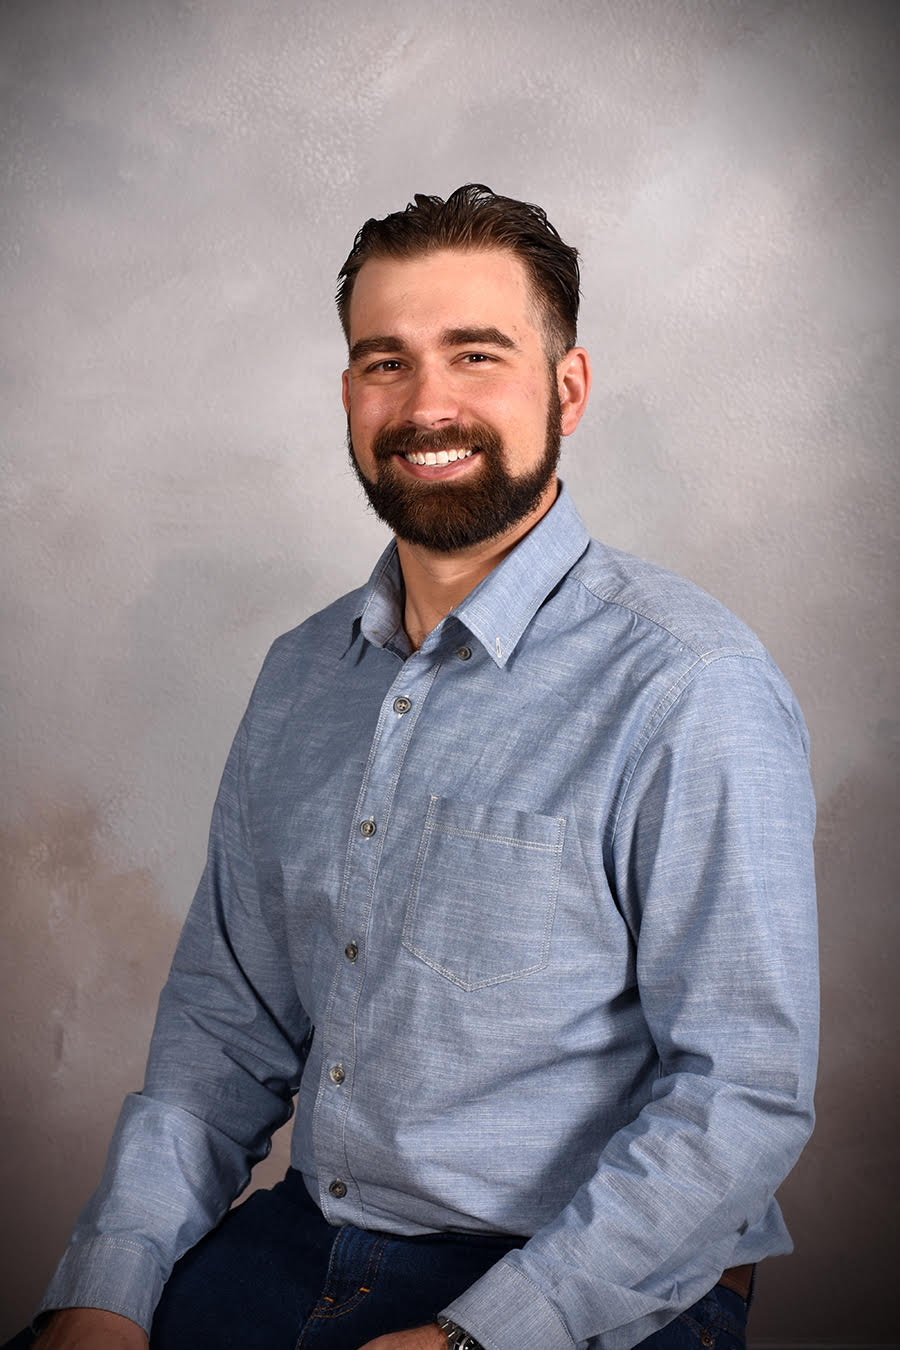 professional business photograph of man by Andrae Michaels portrait studios